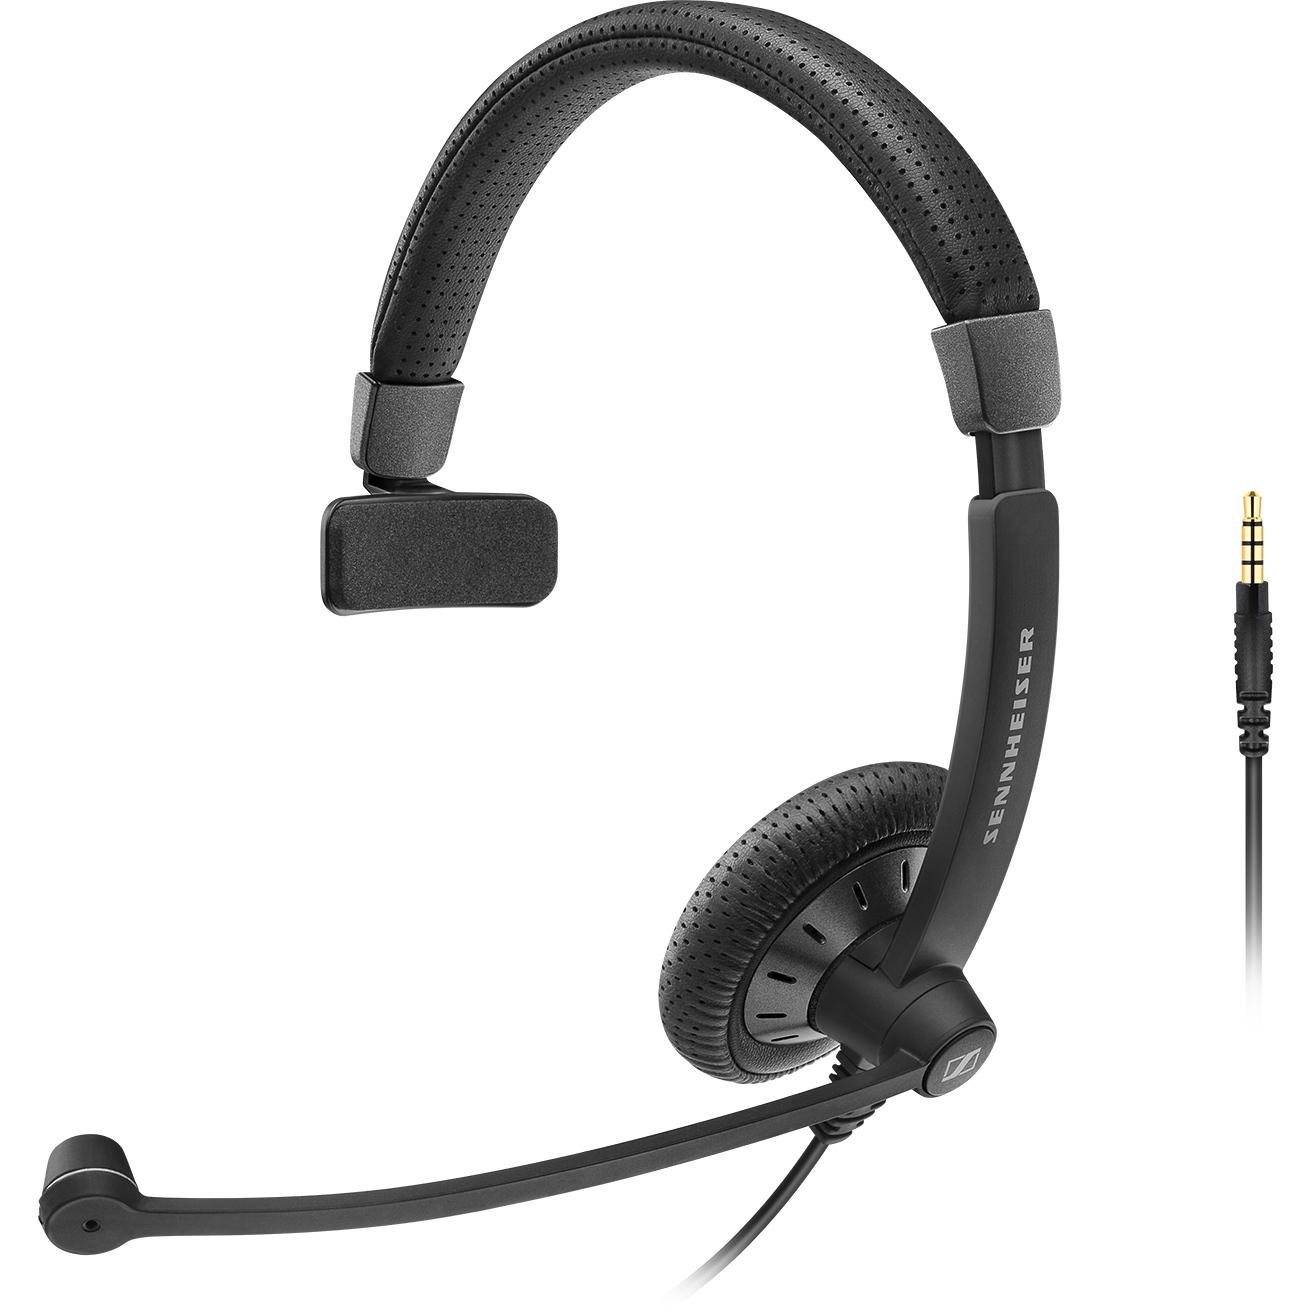 Sennheiser SC 45 Monaural Head-band Black headset